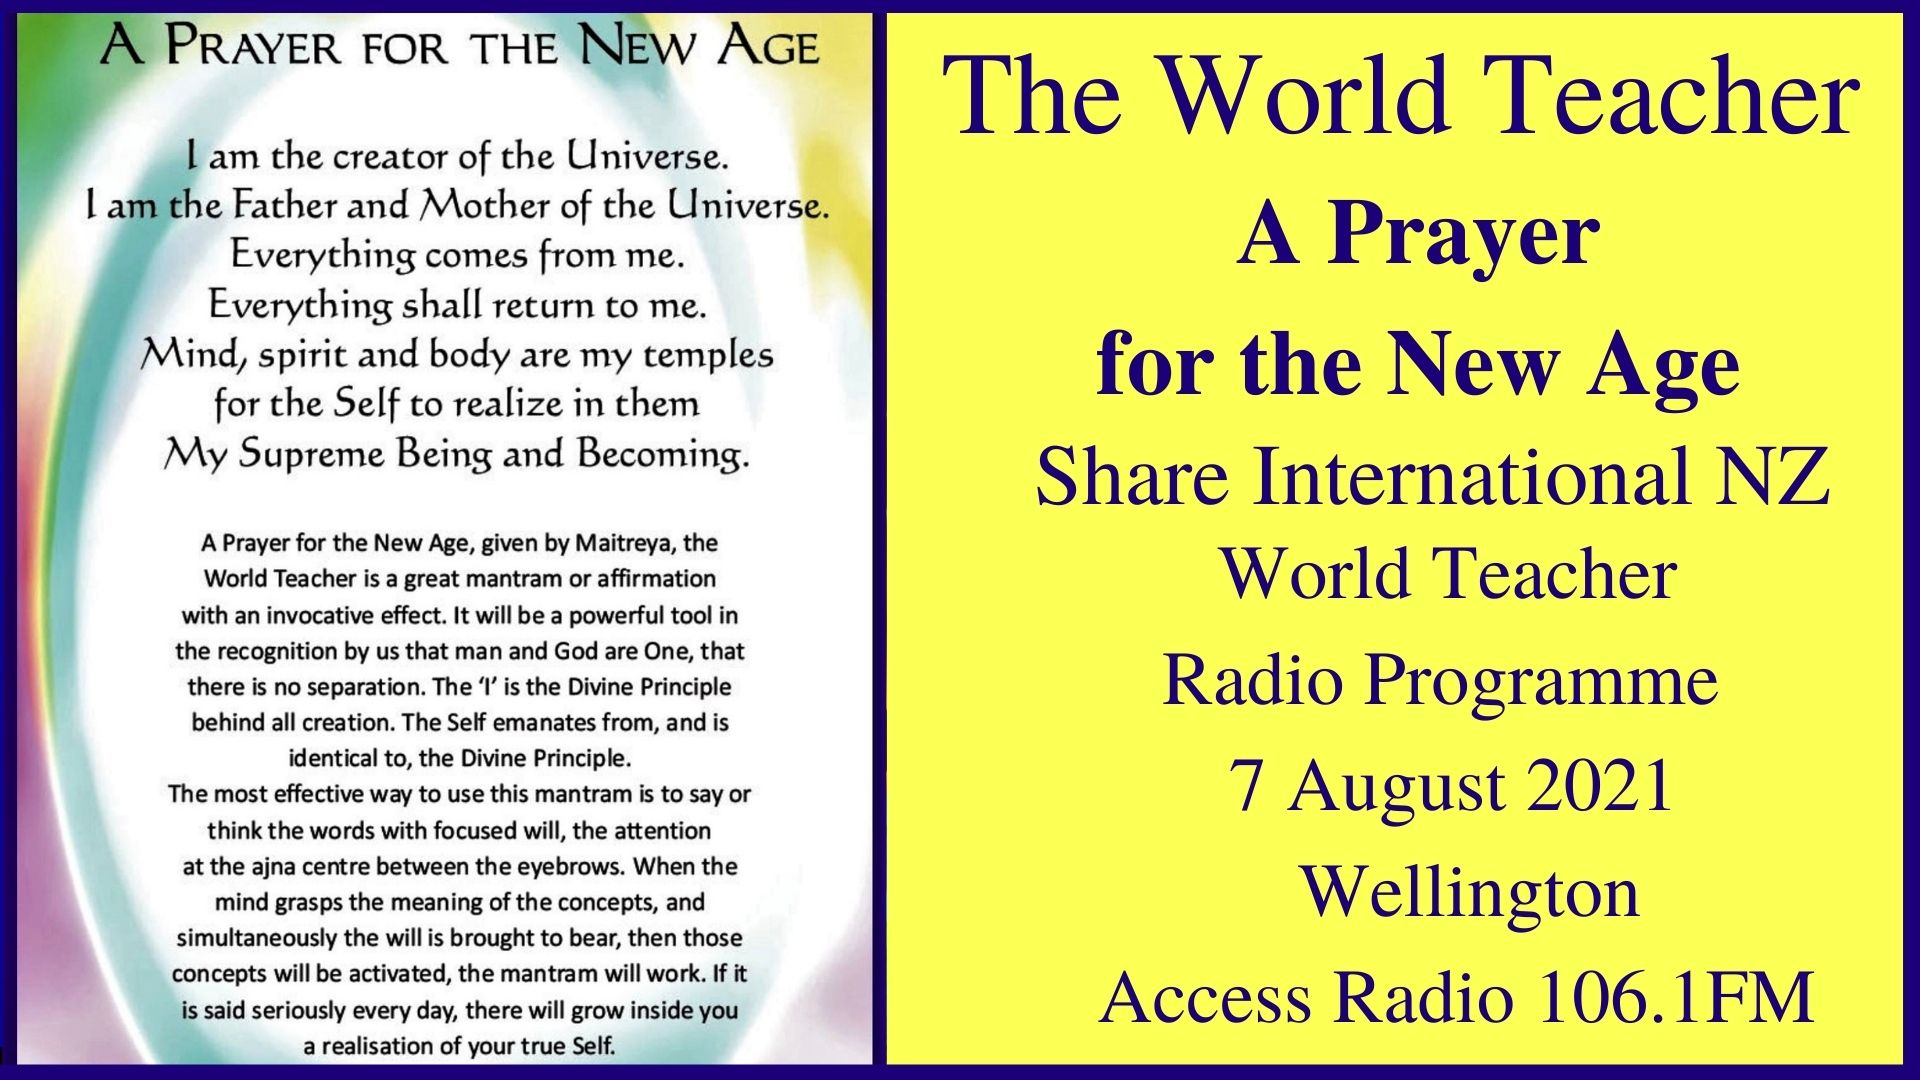 34) A Prayer for the New Age